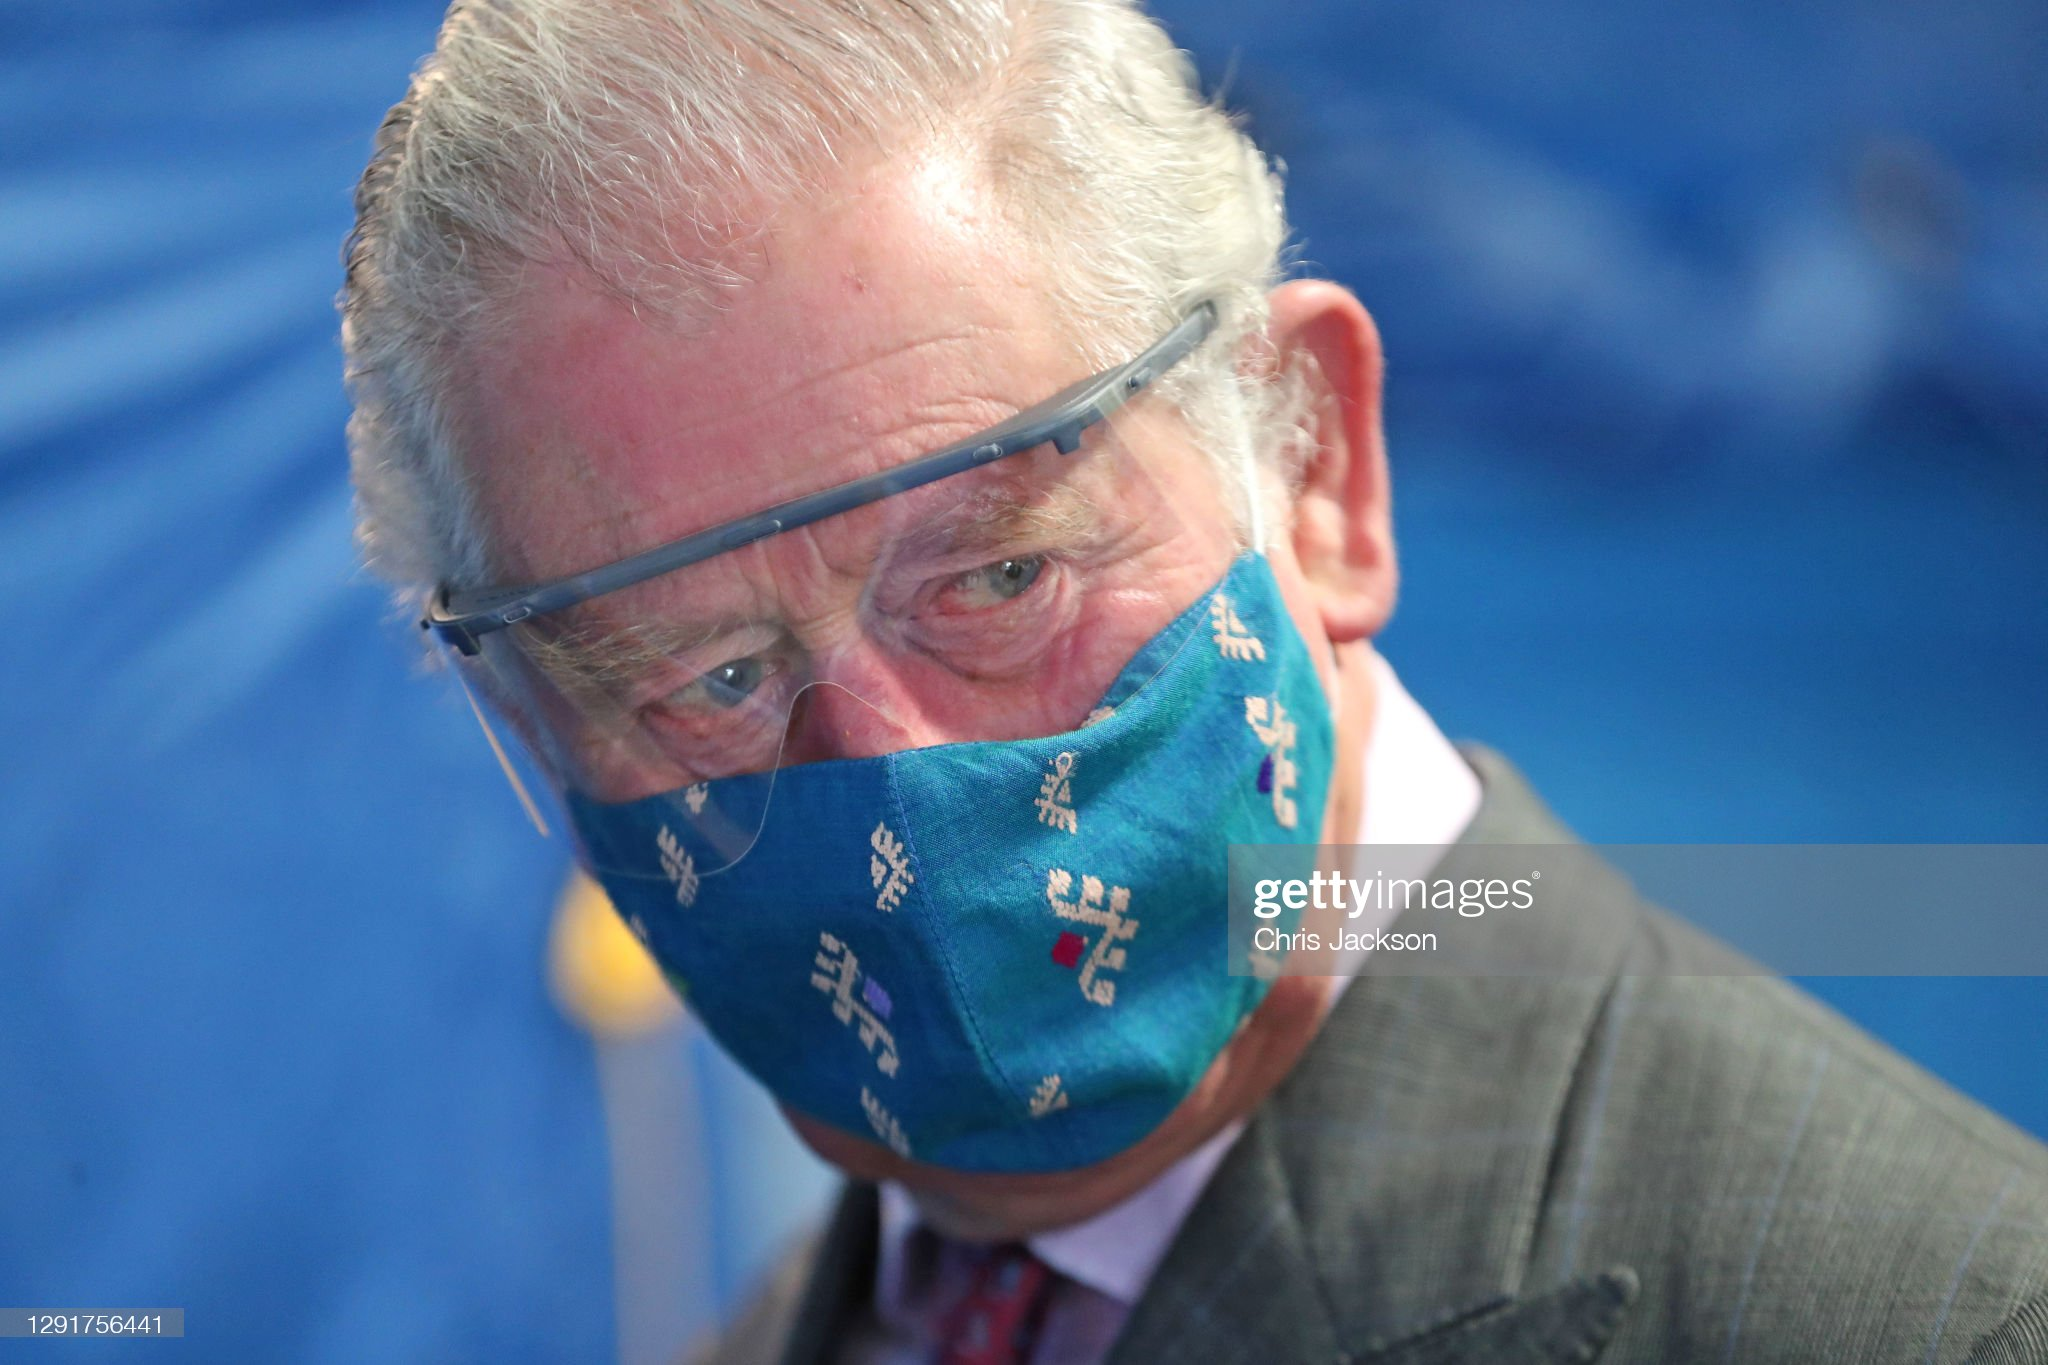 prince-charles-prince-of-wales-wearing-a-facemask-and-protective-a-picture-id1291756441